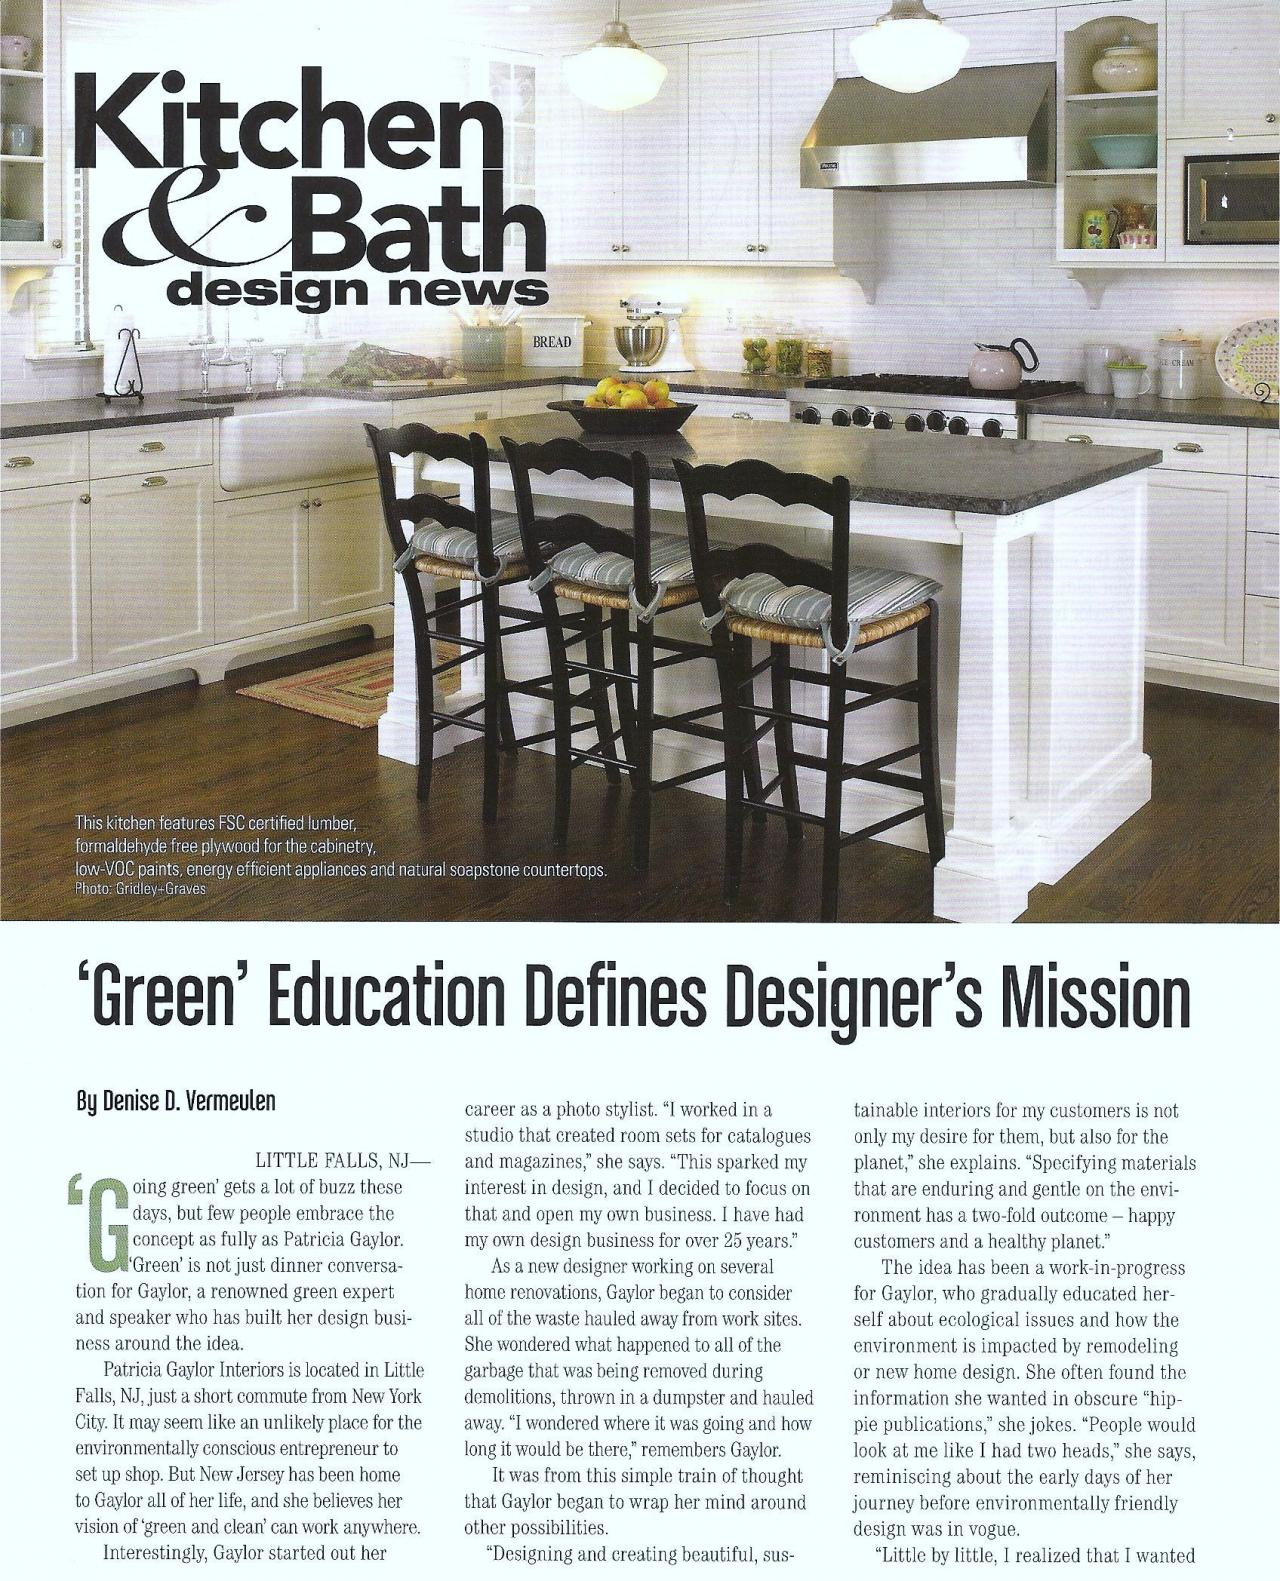 Patricia gaylor interiors magazine articles for Interior design articles